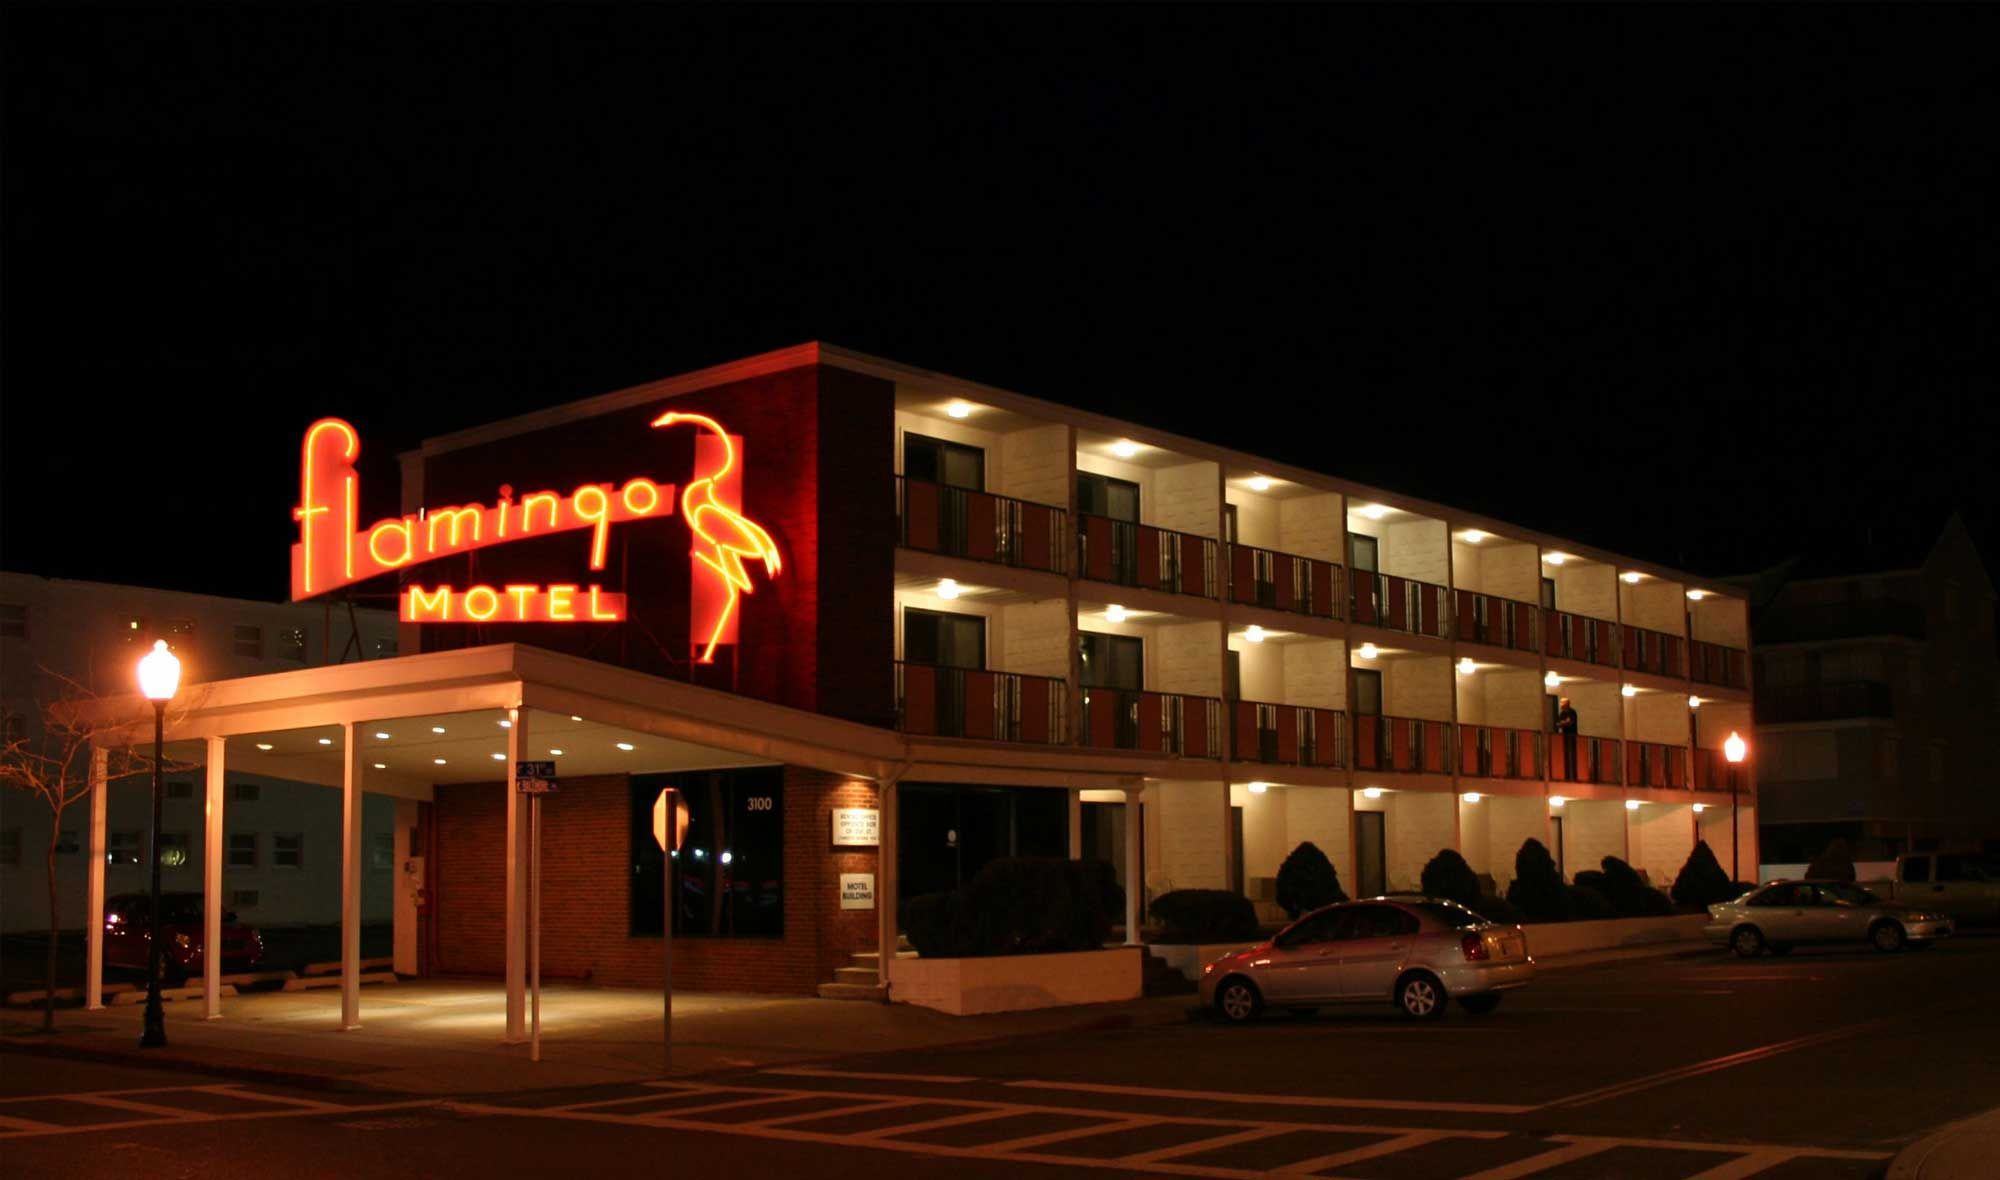 Ocean City Md Motel Images View Availability Ocean City Md Hotels Ocean City Ocean City Maryland